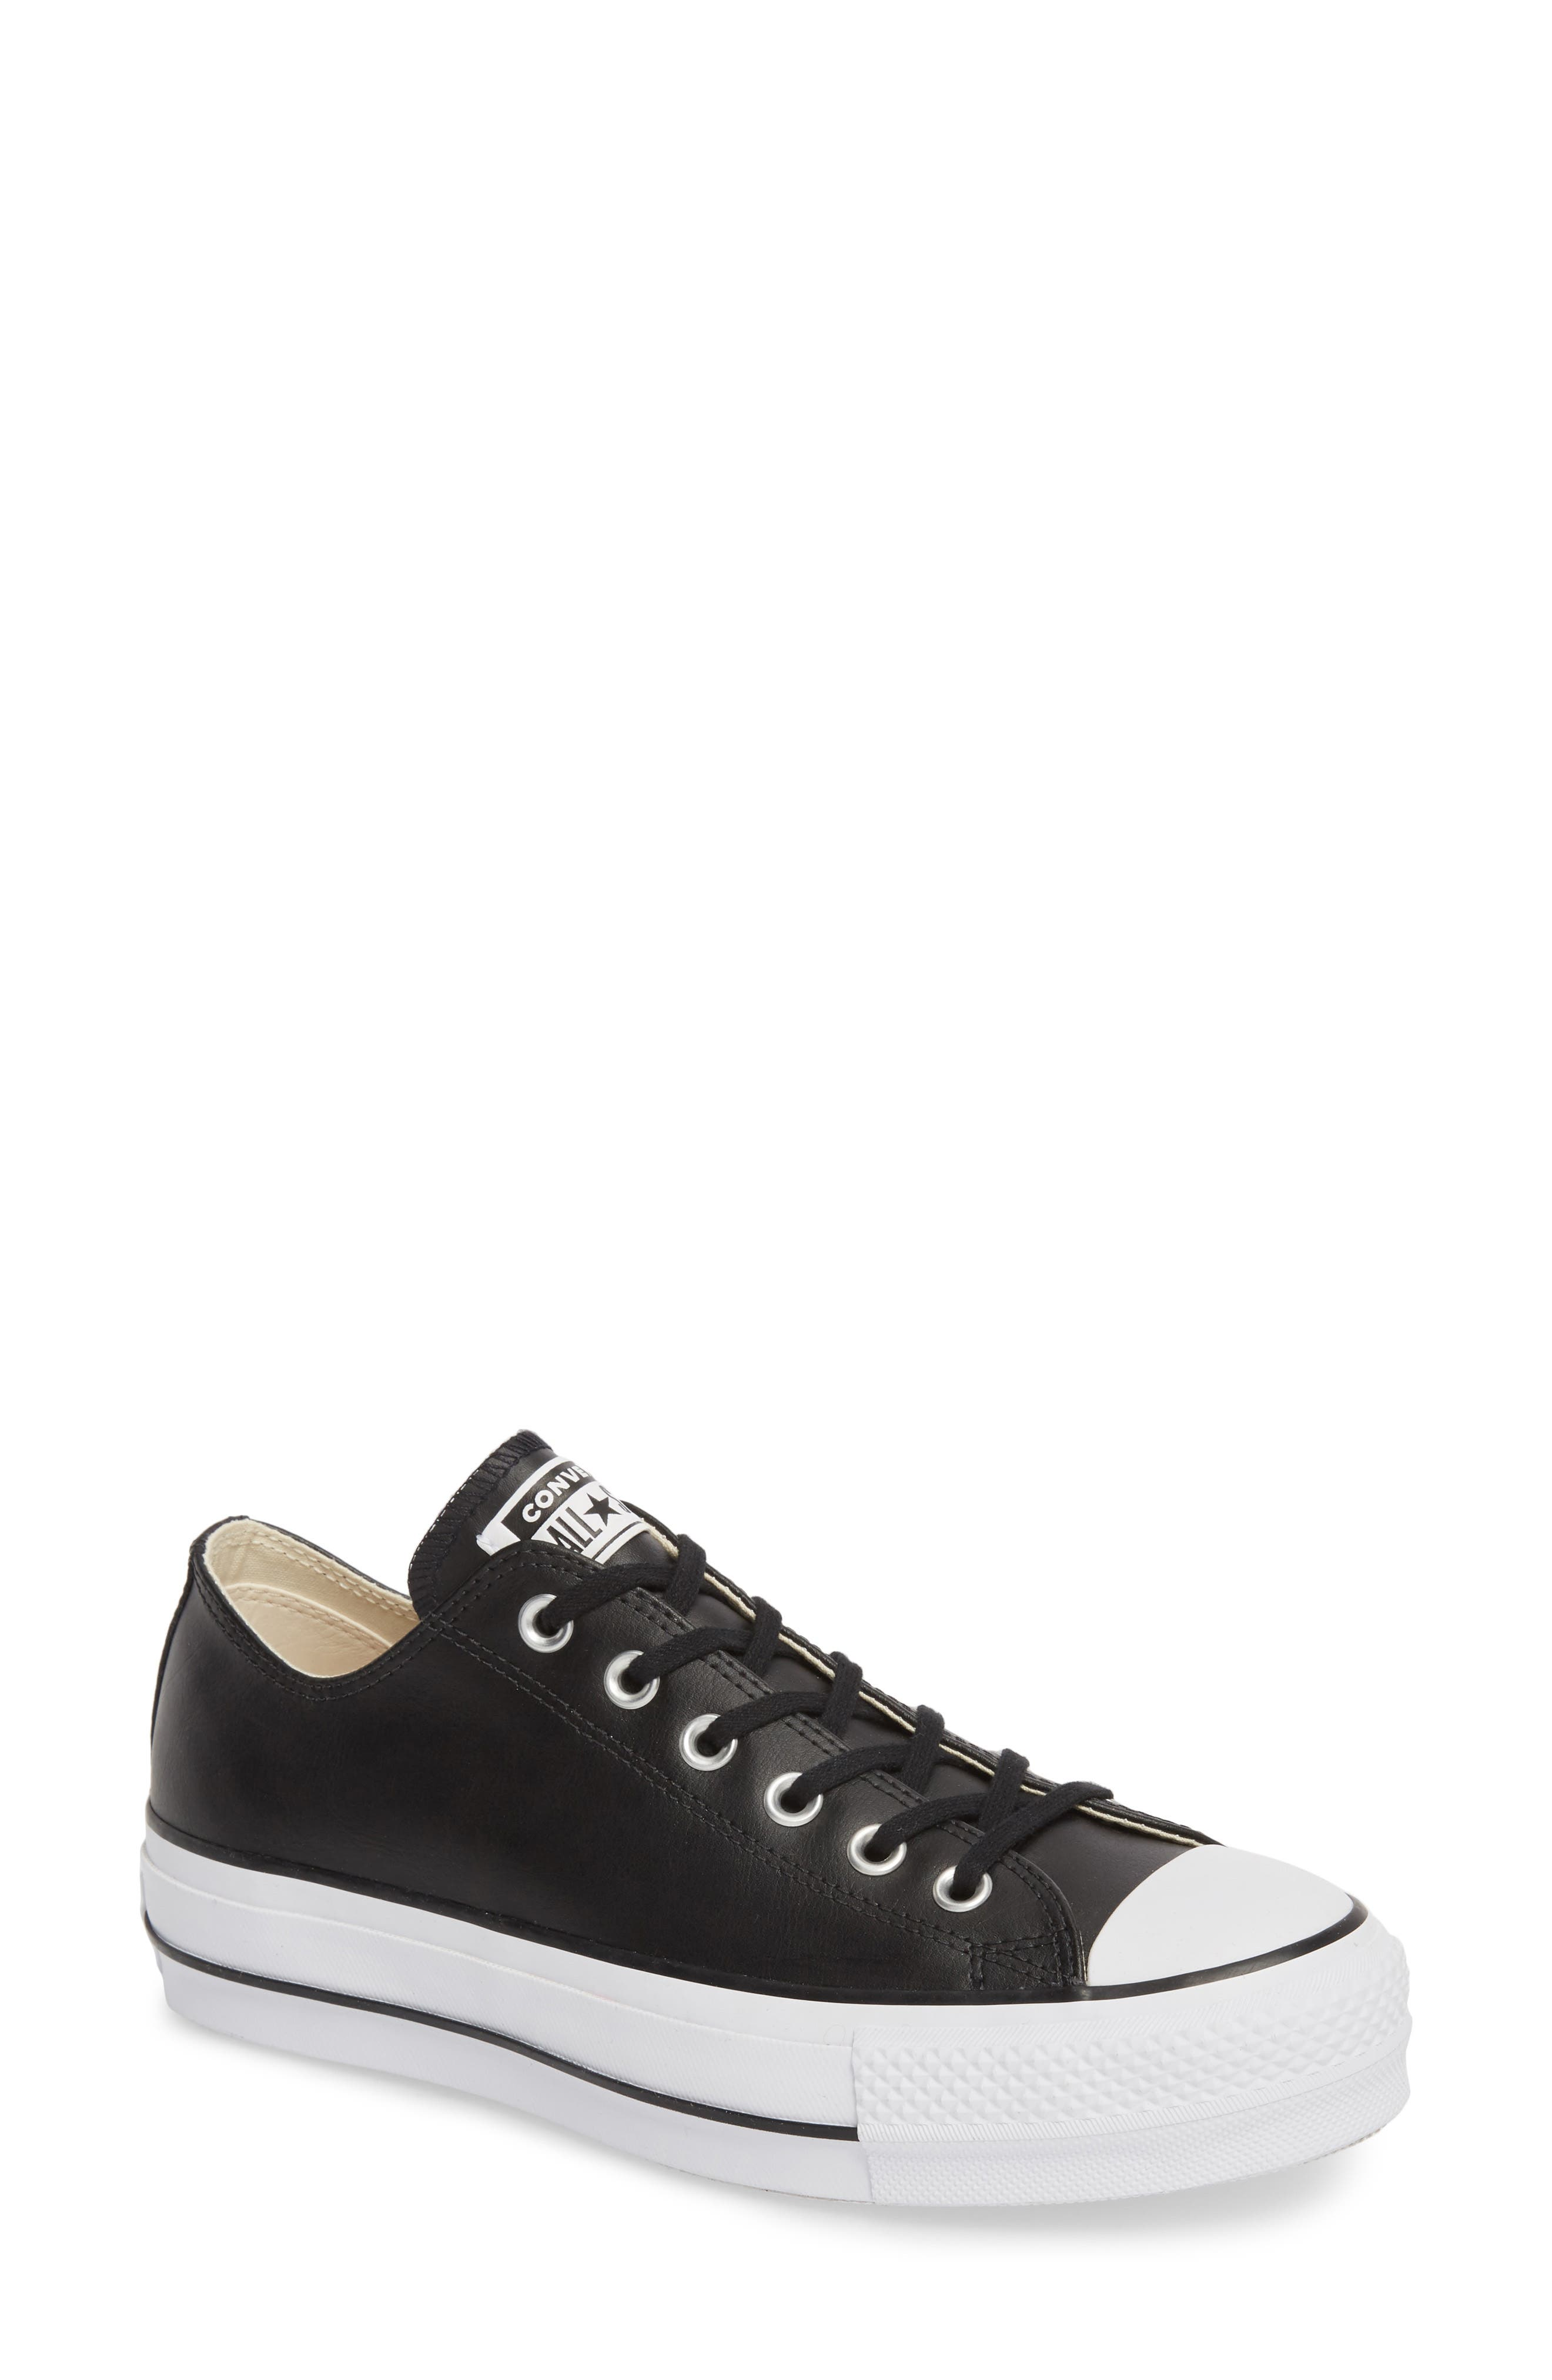 CONVERSE, Chuck Taylor<sup>®</sup> All Star<sup>®</sup> Platform Sneaker, Main thumbnail 1, color, BLACK/ BLACK LEATHER